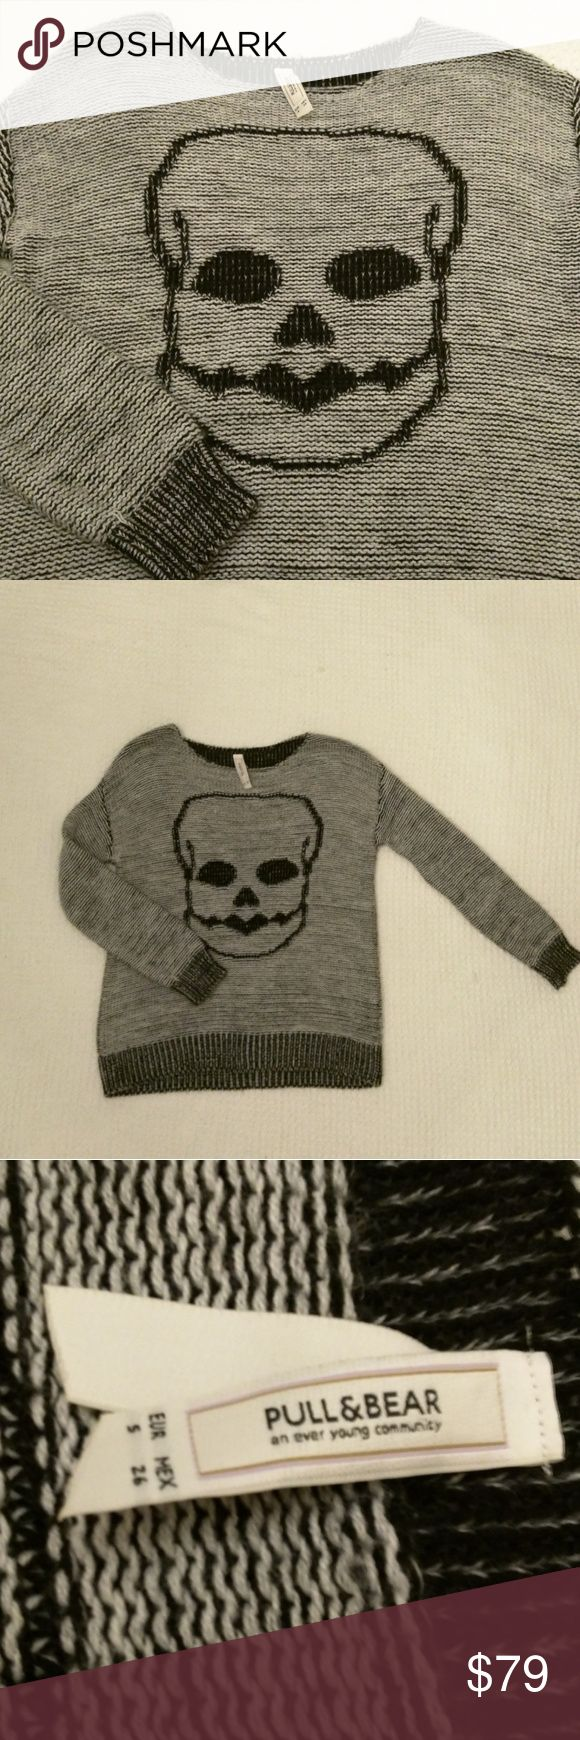 Pull&Bear skull knit sweater vegan soft Small So soft and comfy! This sweater is sold in the UK- hard to find!! Love the 💀 skull Vegan Pull&Bear Sweaters Crew & Scoop Necks